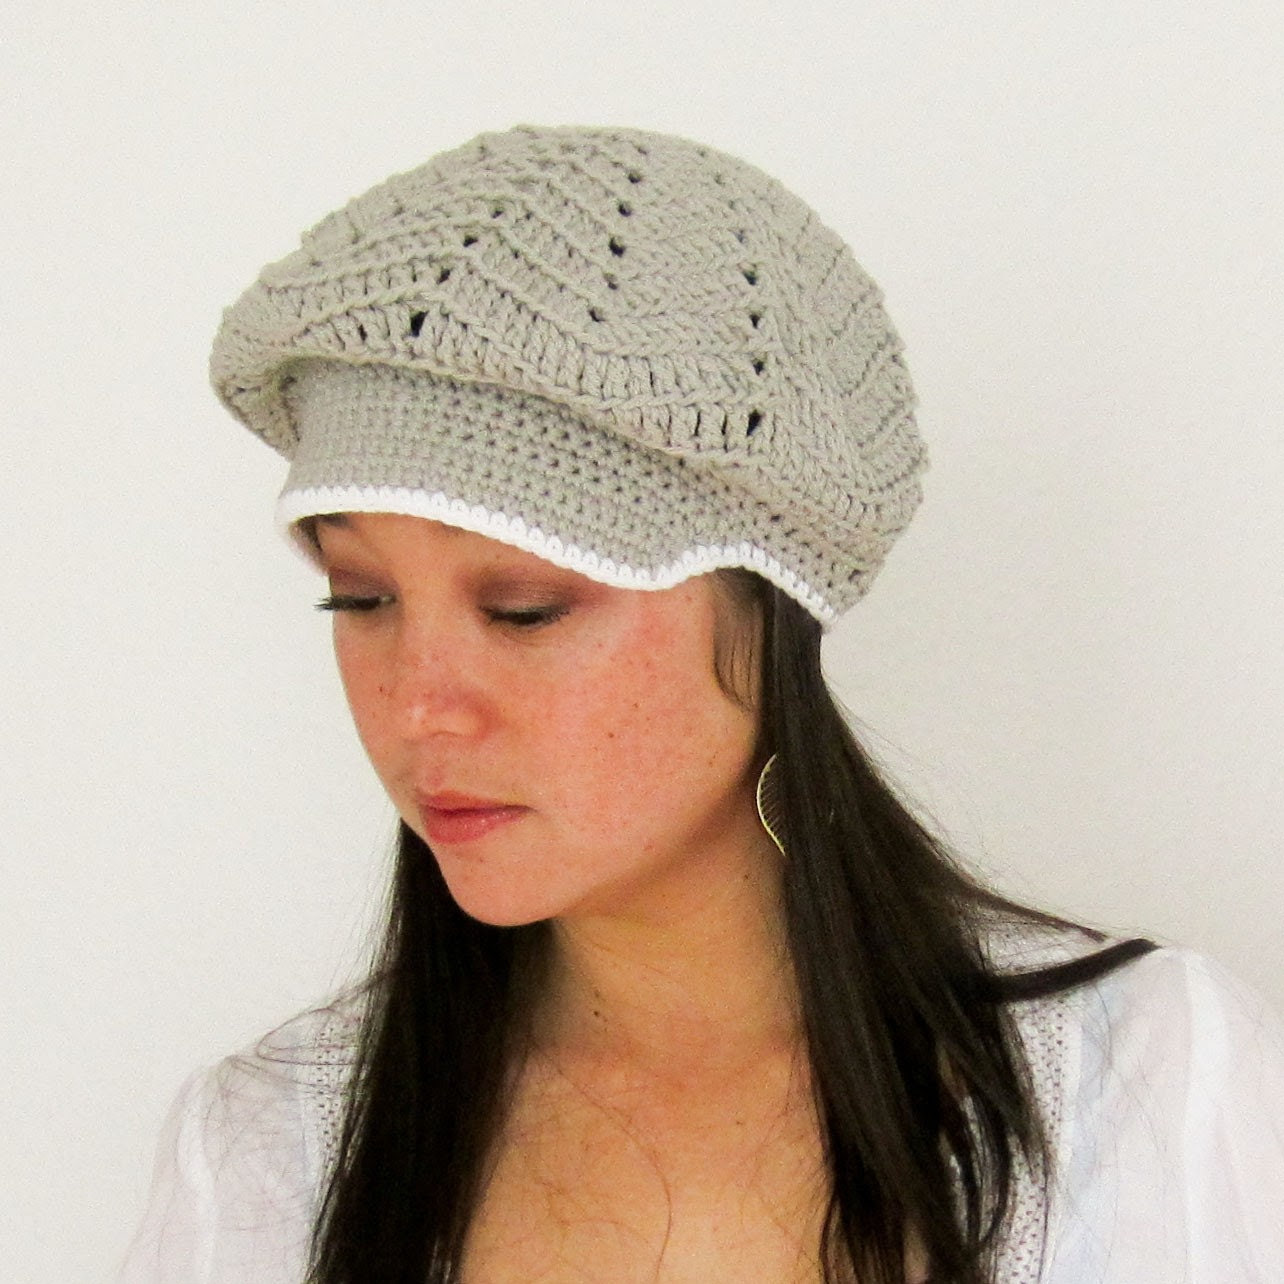 Woman's Newsboy Cap - Slouchy Cotton Crocheted Adult Newsboy Hat in Choice of Color